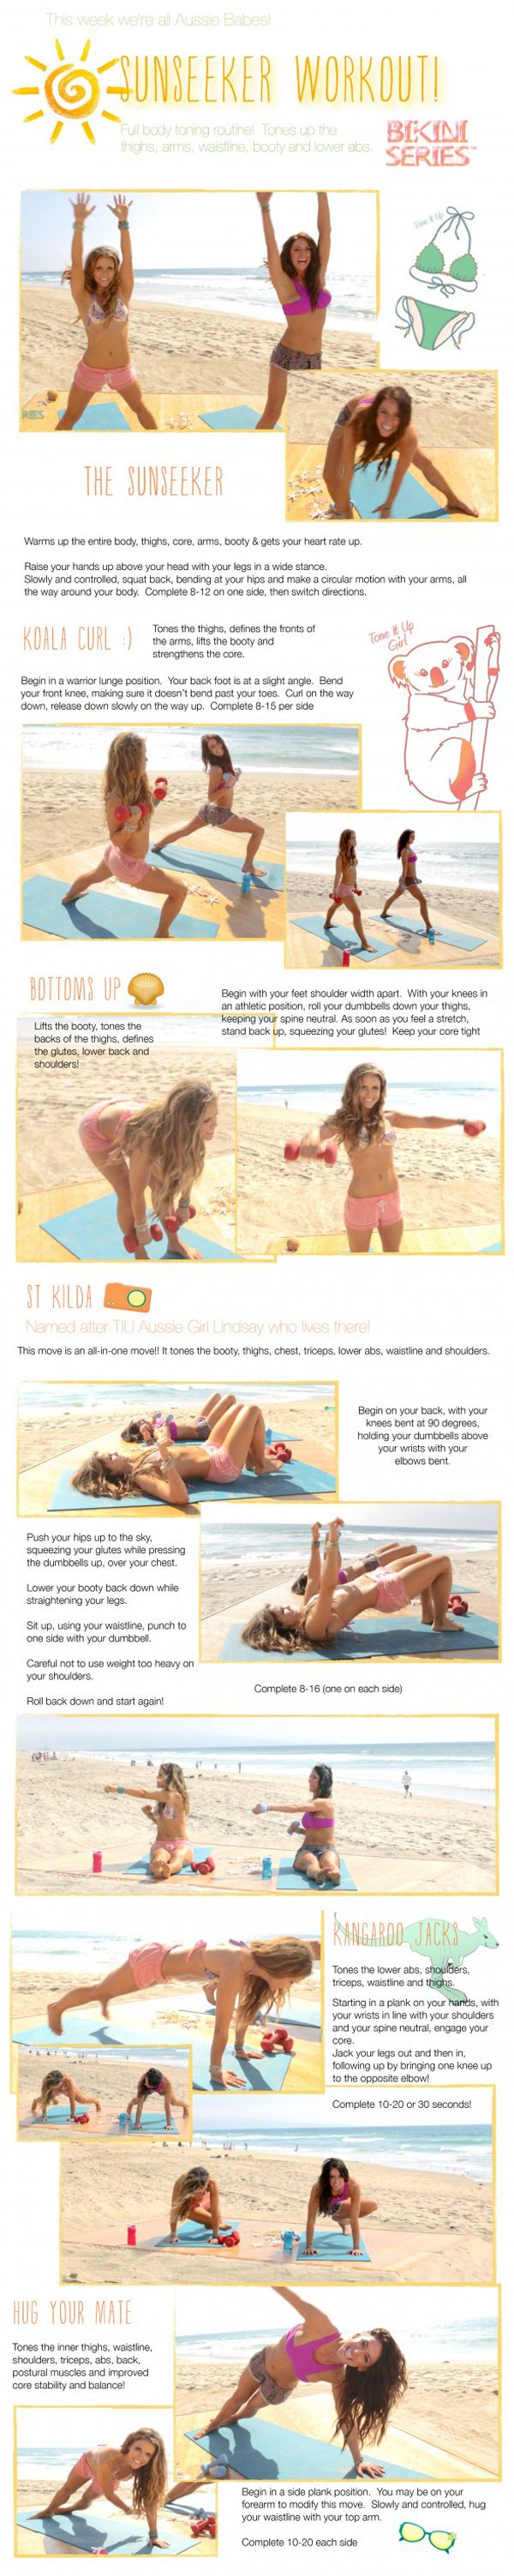 Bikini Body Workout.